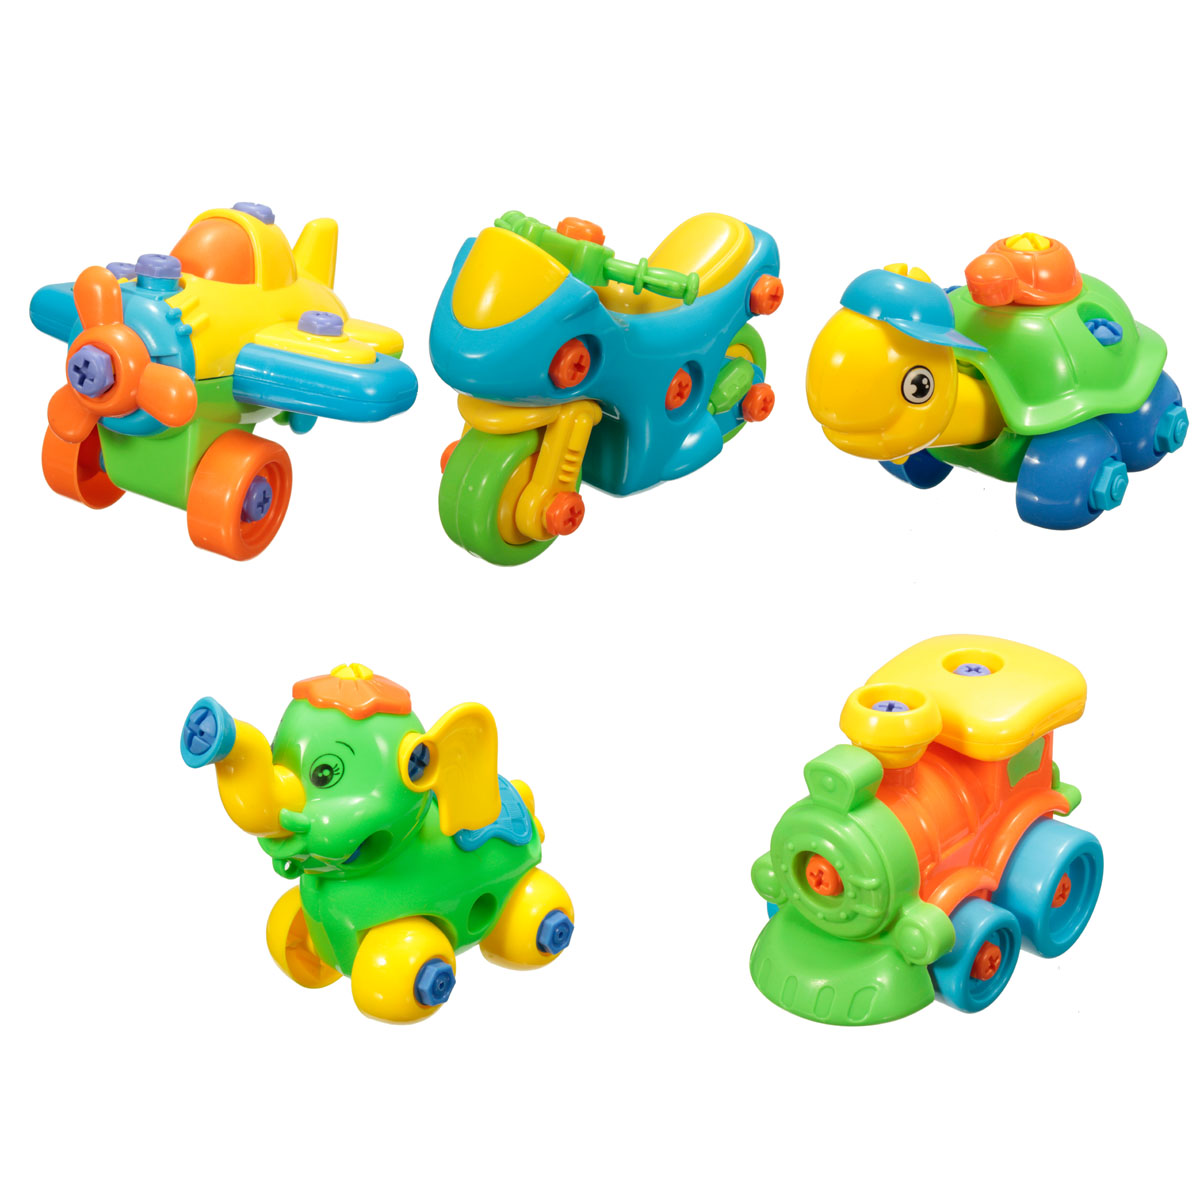 Fun Educational Toys : Jigsaw building assembled toys develop learning fun build